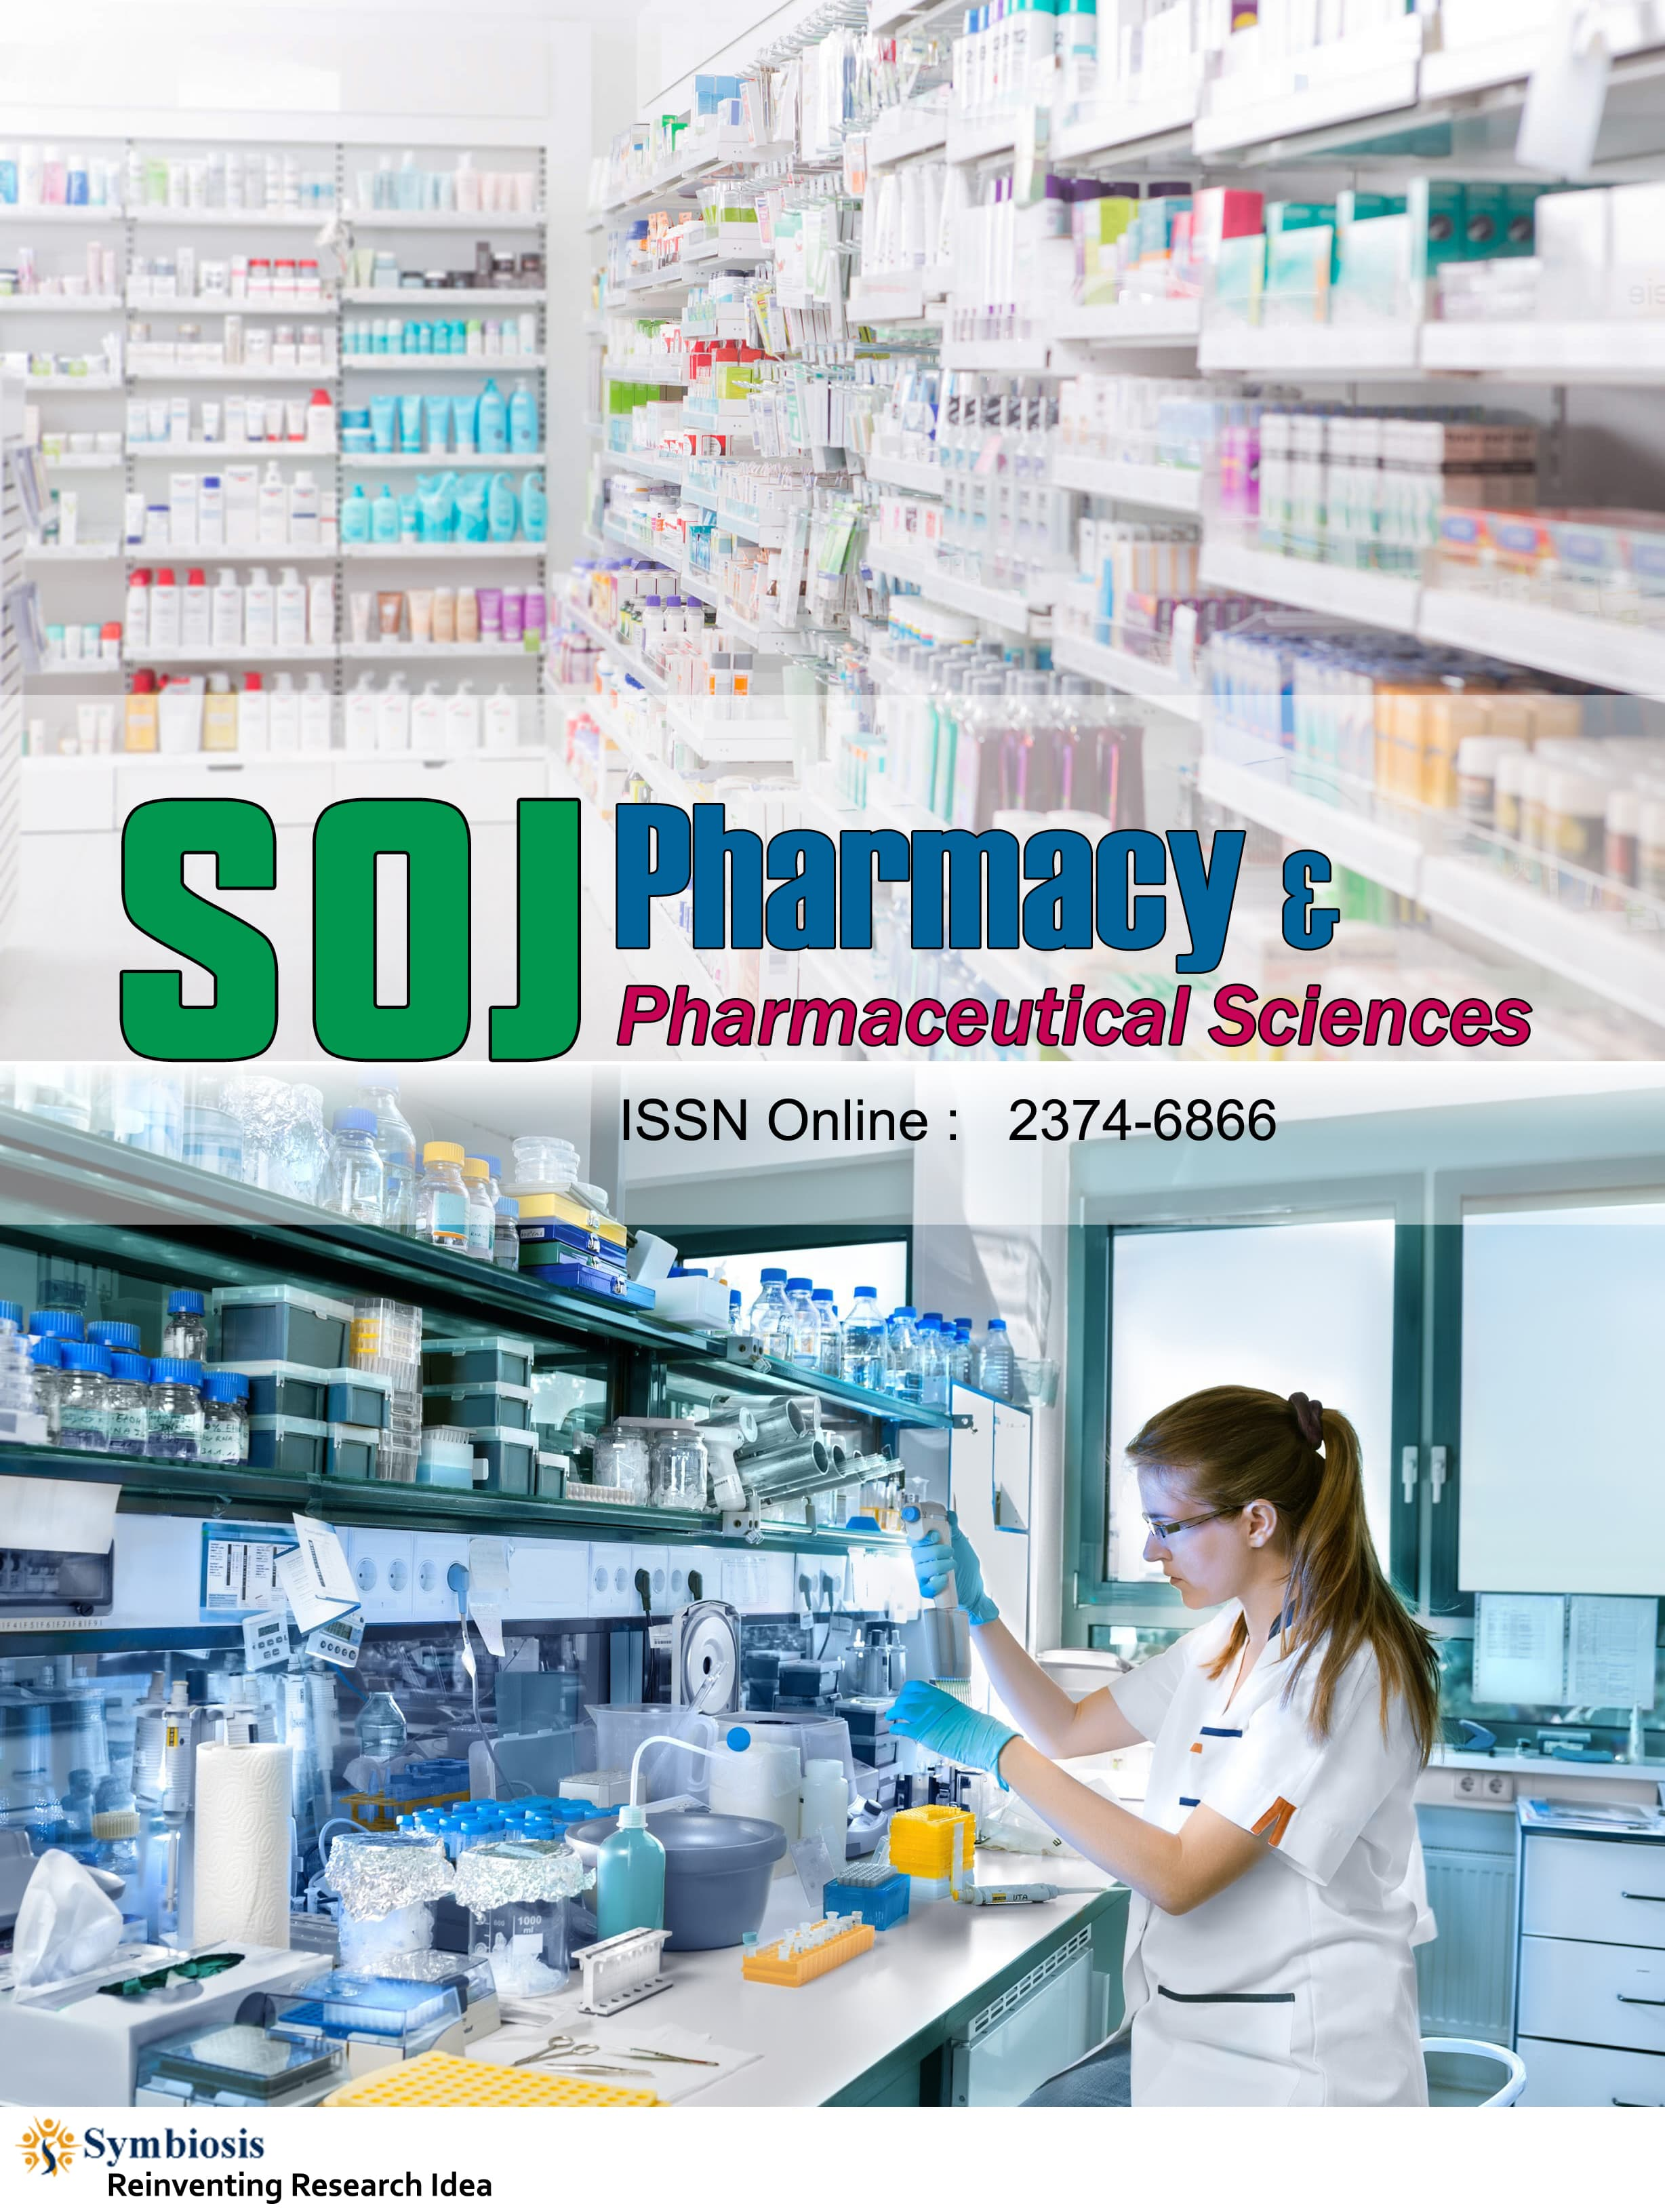 Open Access Journal of Pharmacy & Pharmaceutical Sciences